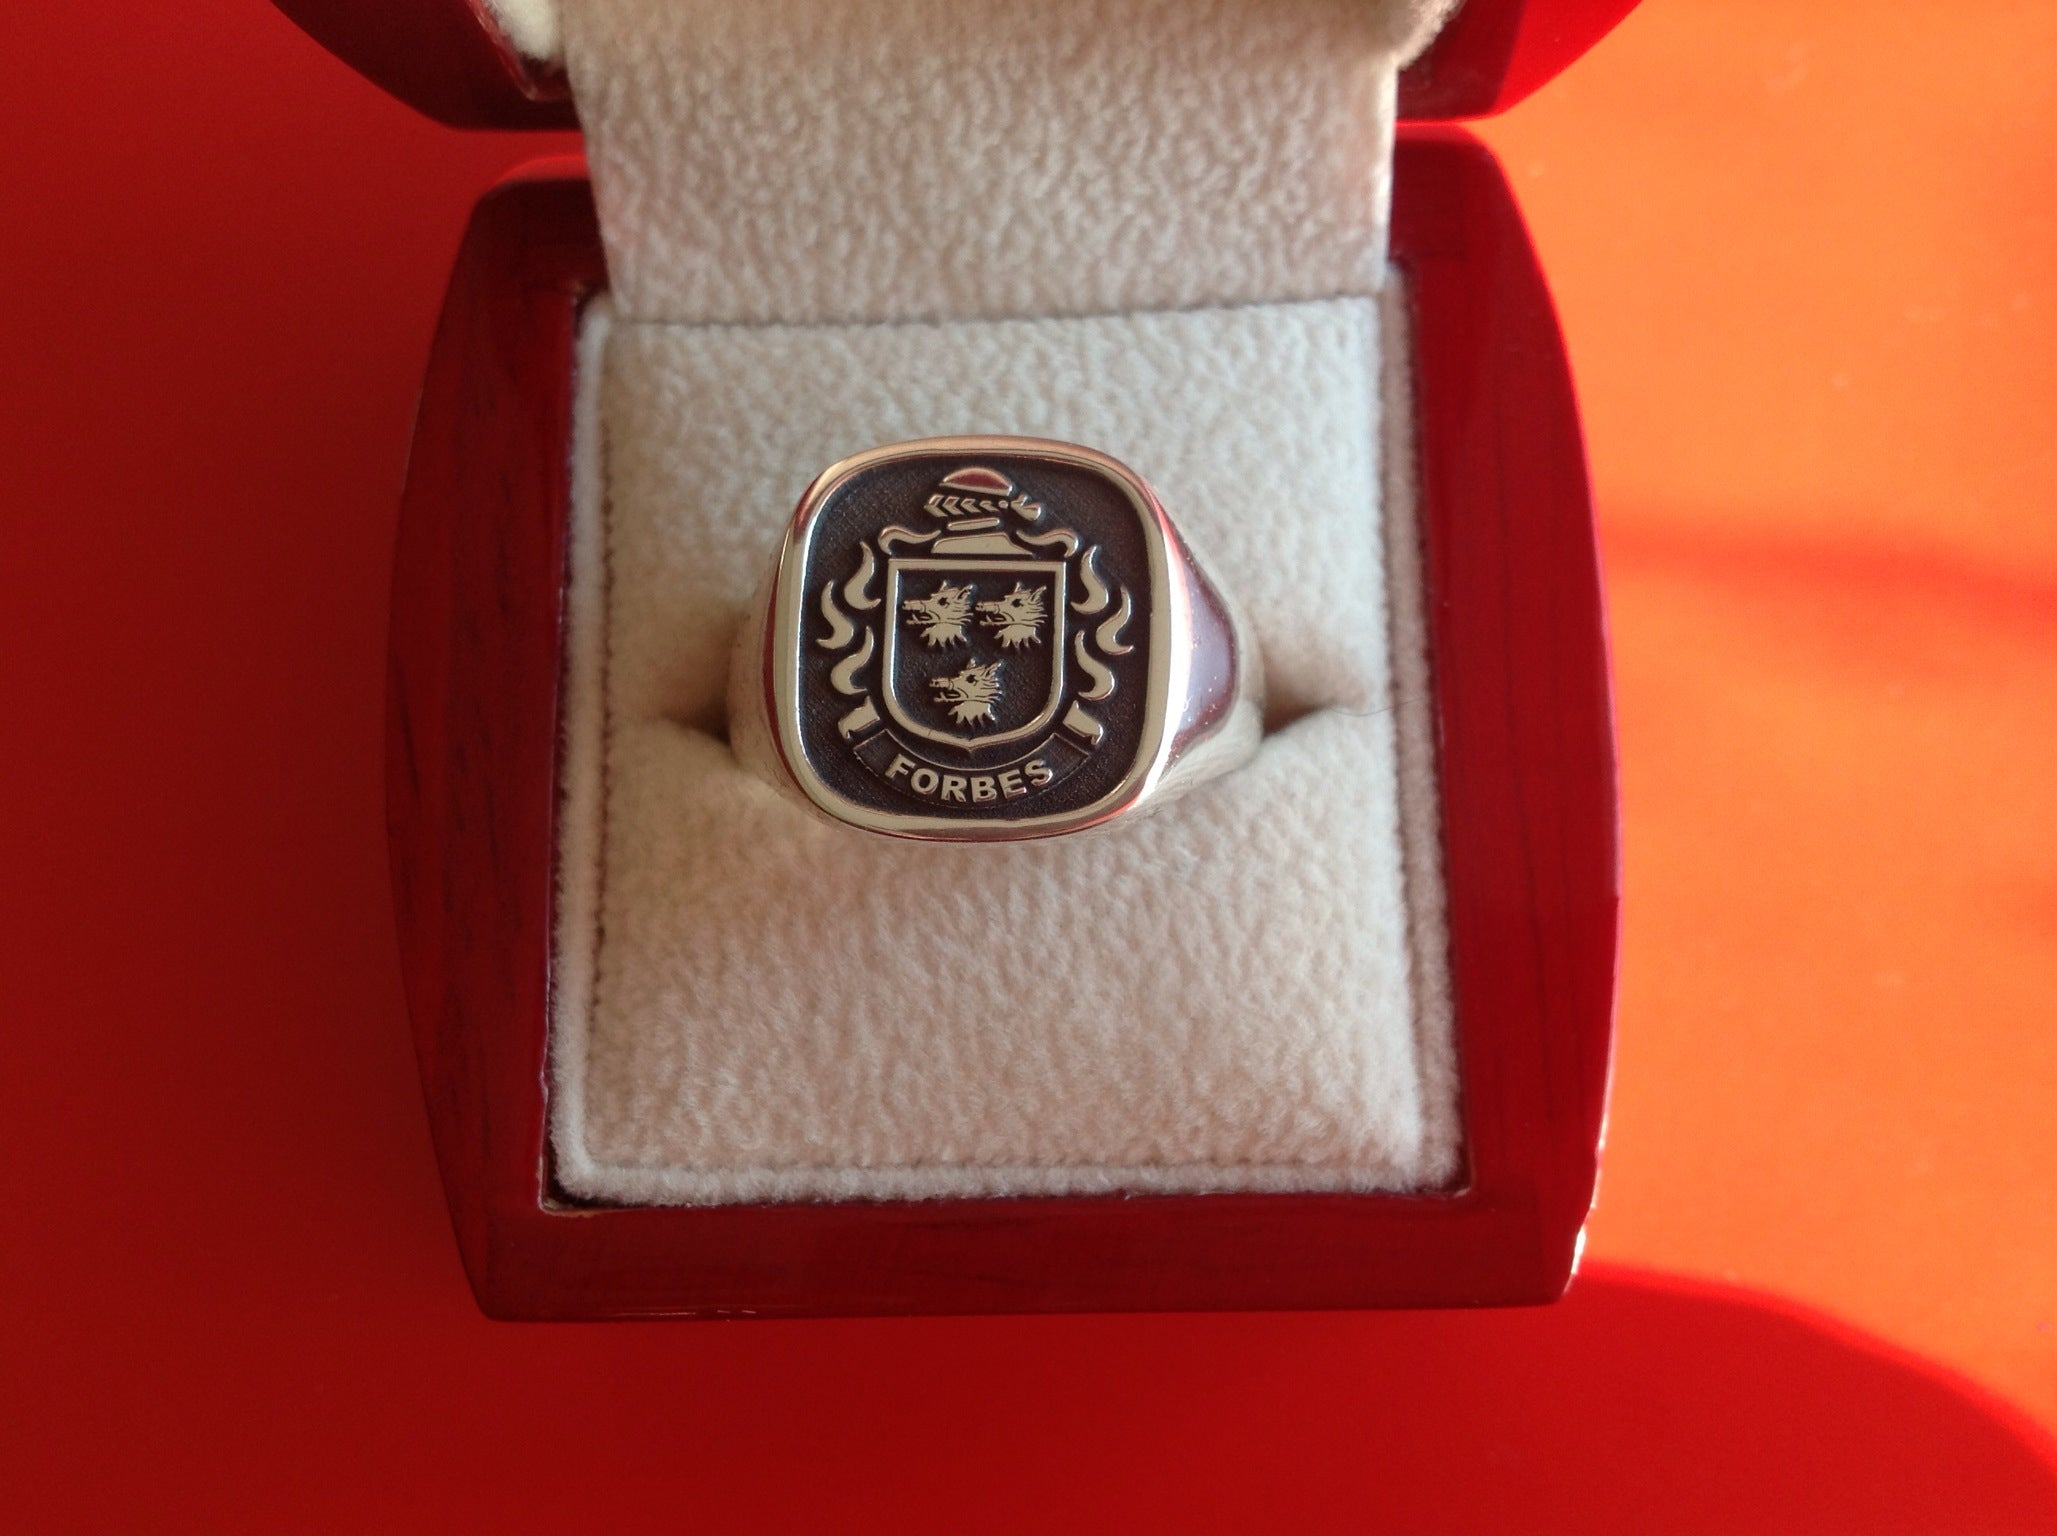 Forbes coat of arms ring